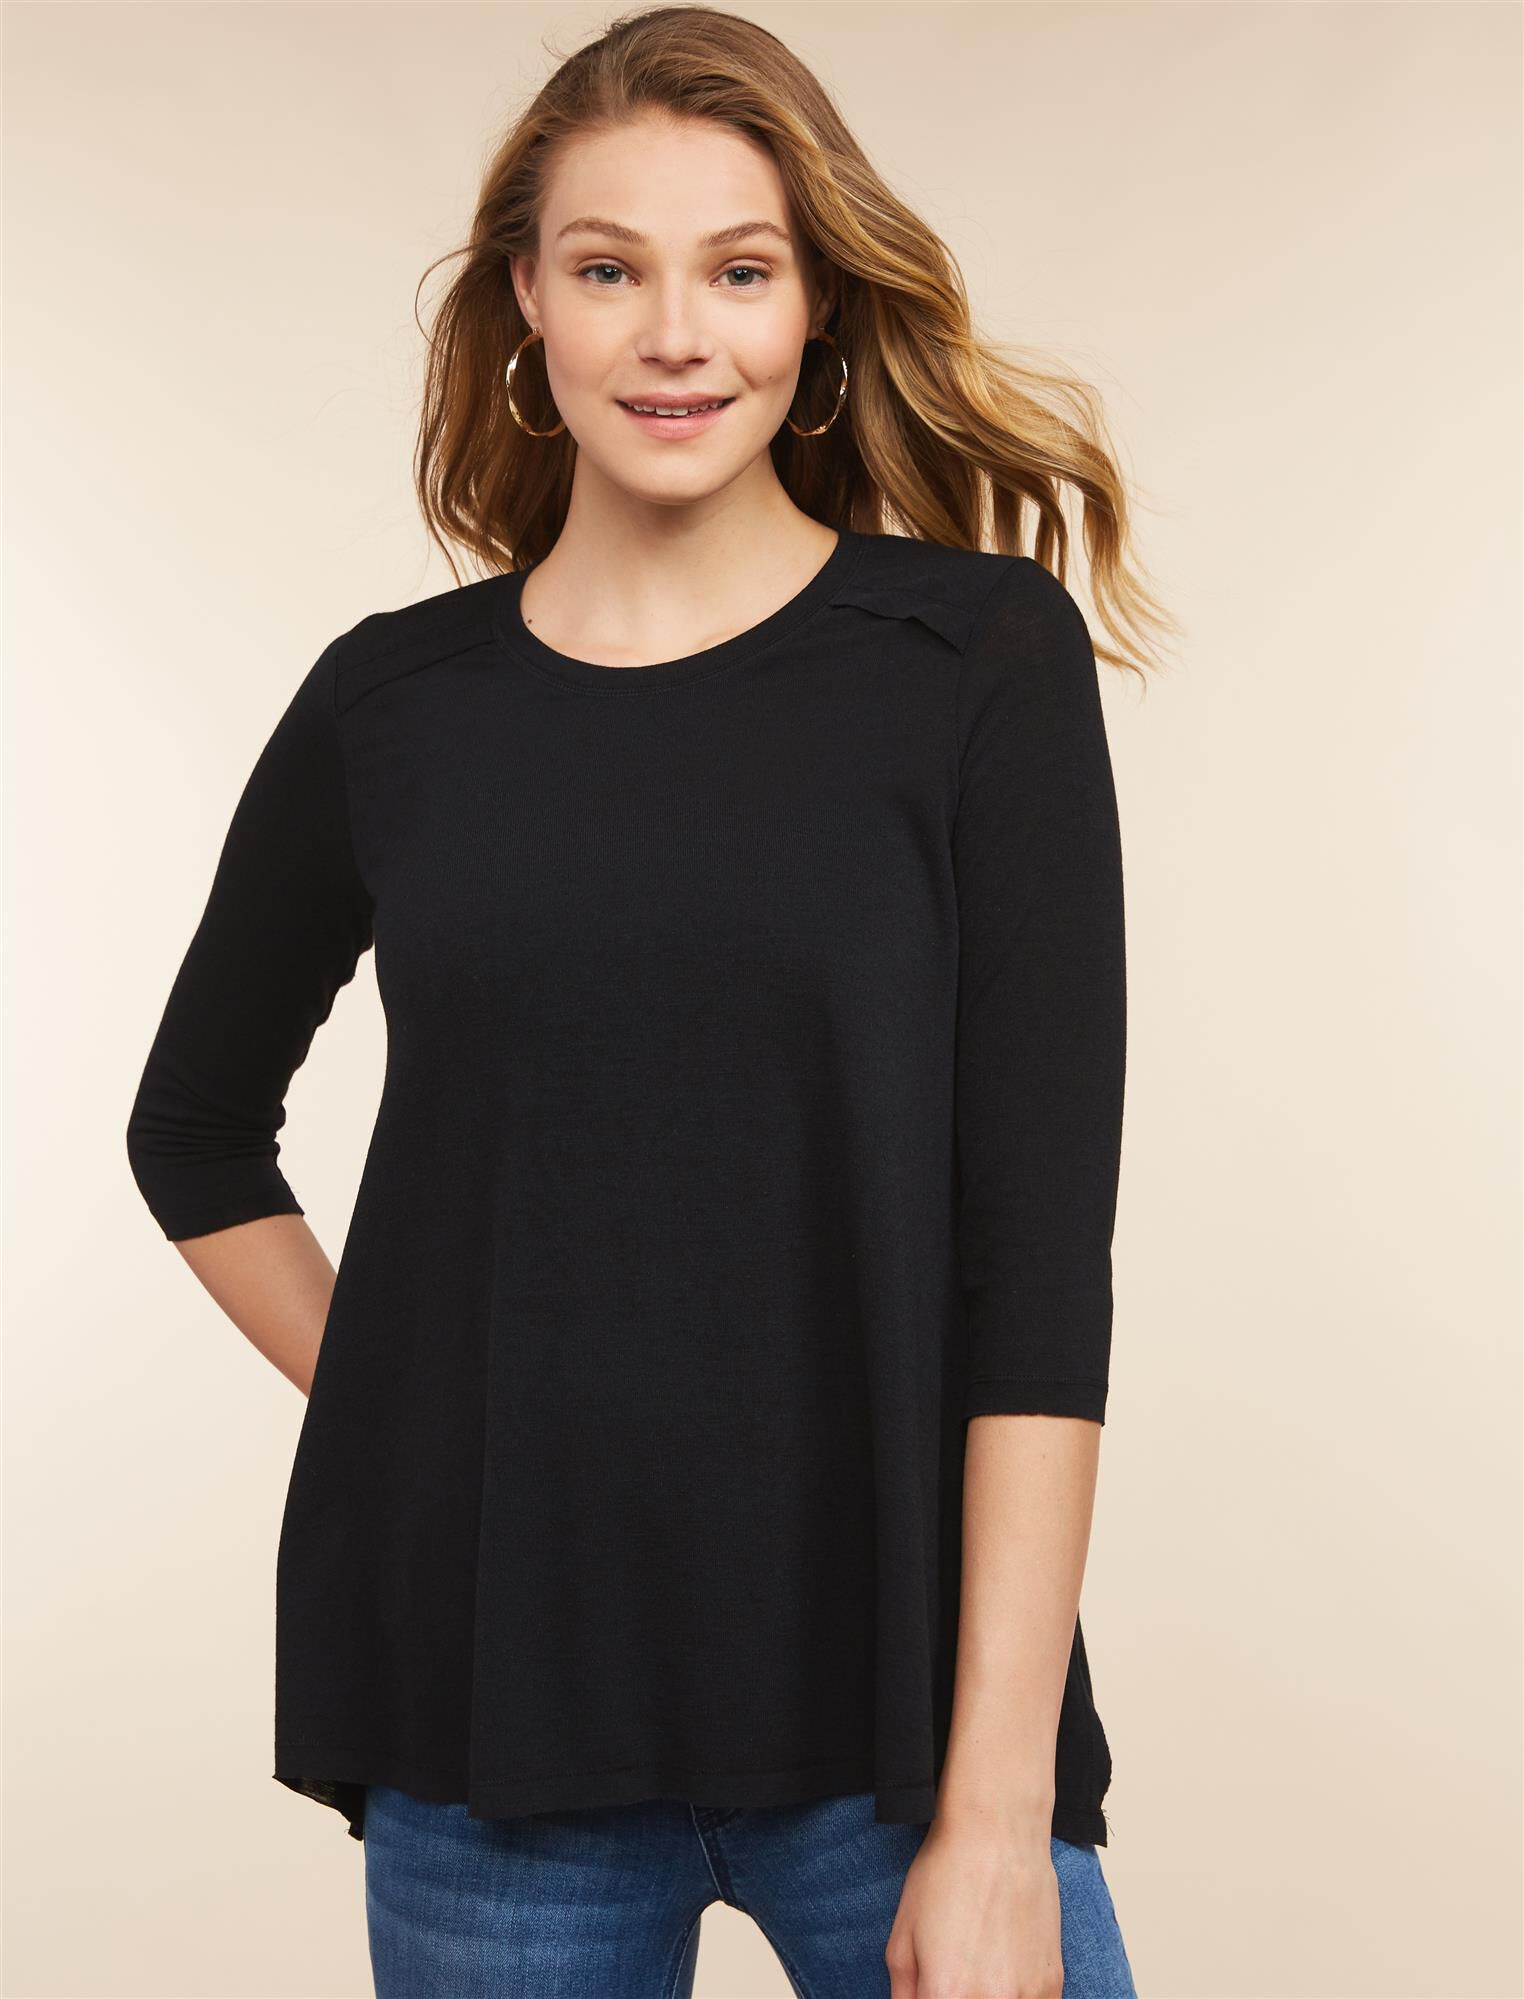 Jessica Simpson Pull Over Nursing Top- Black